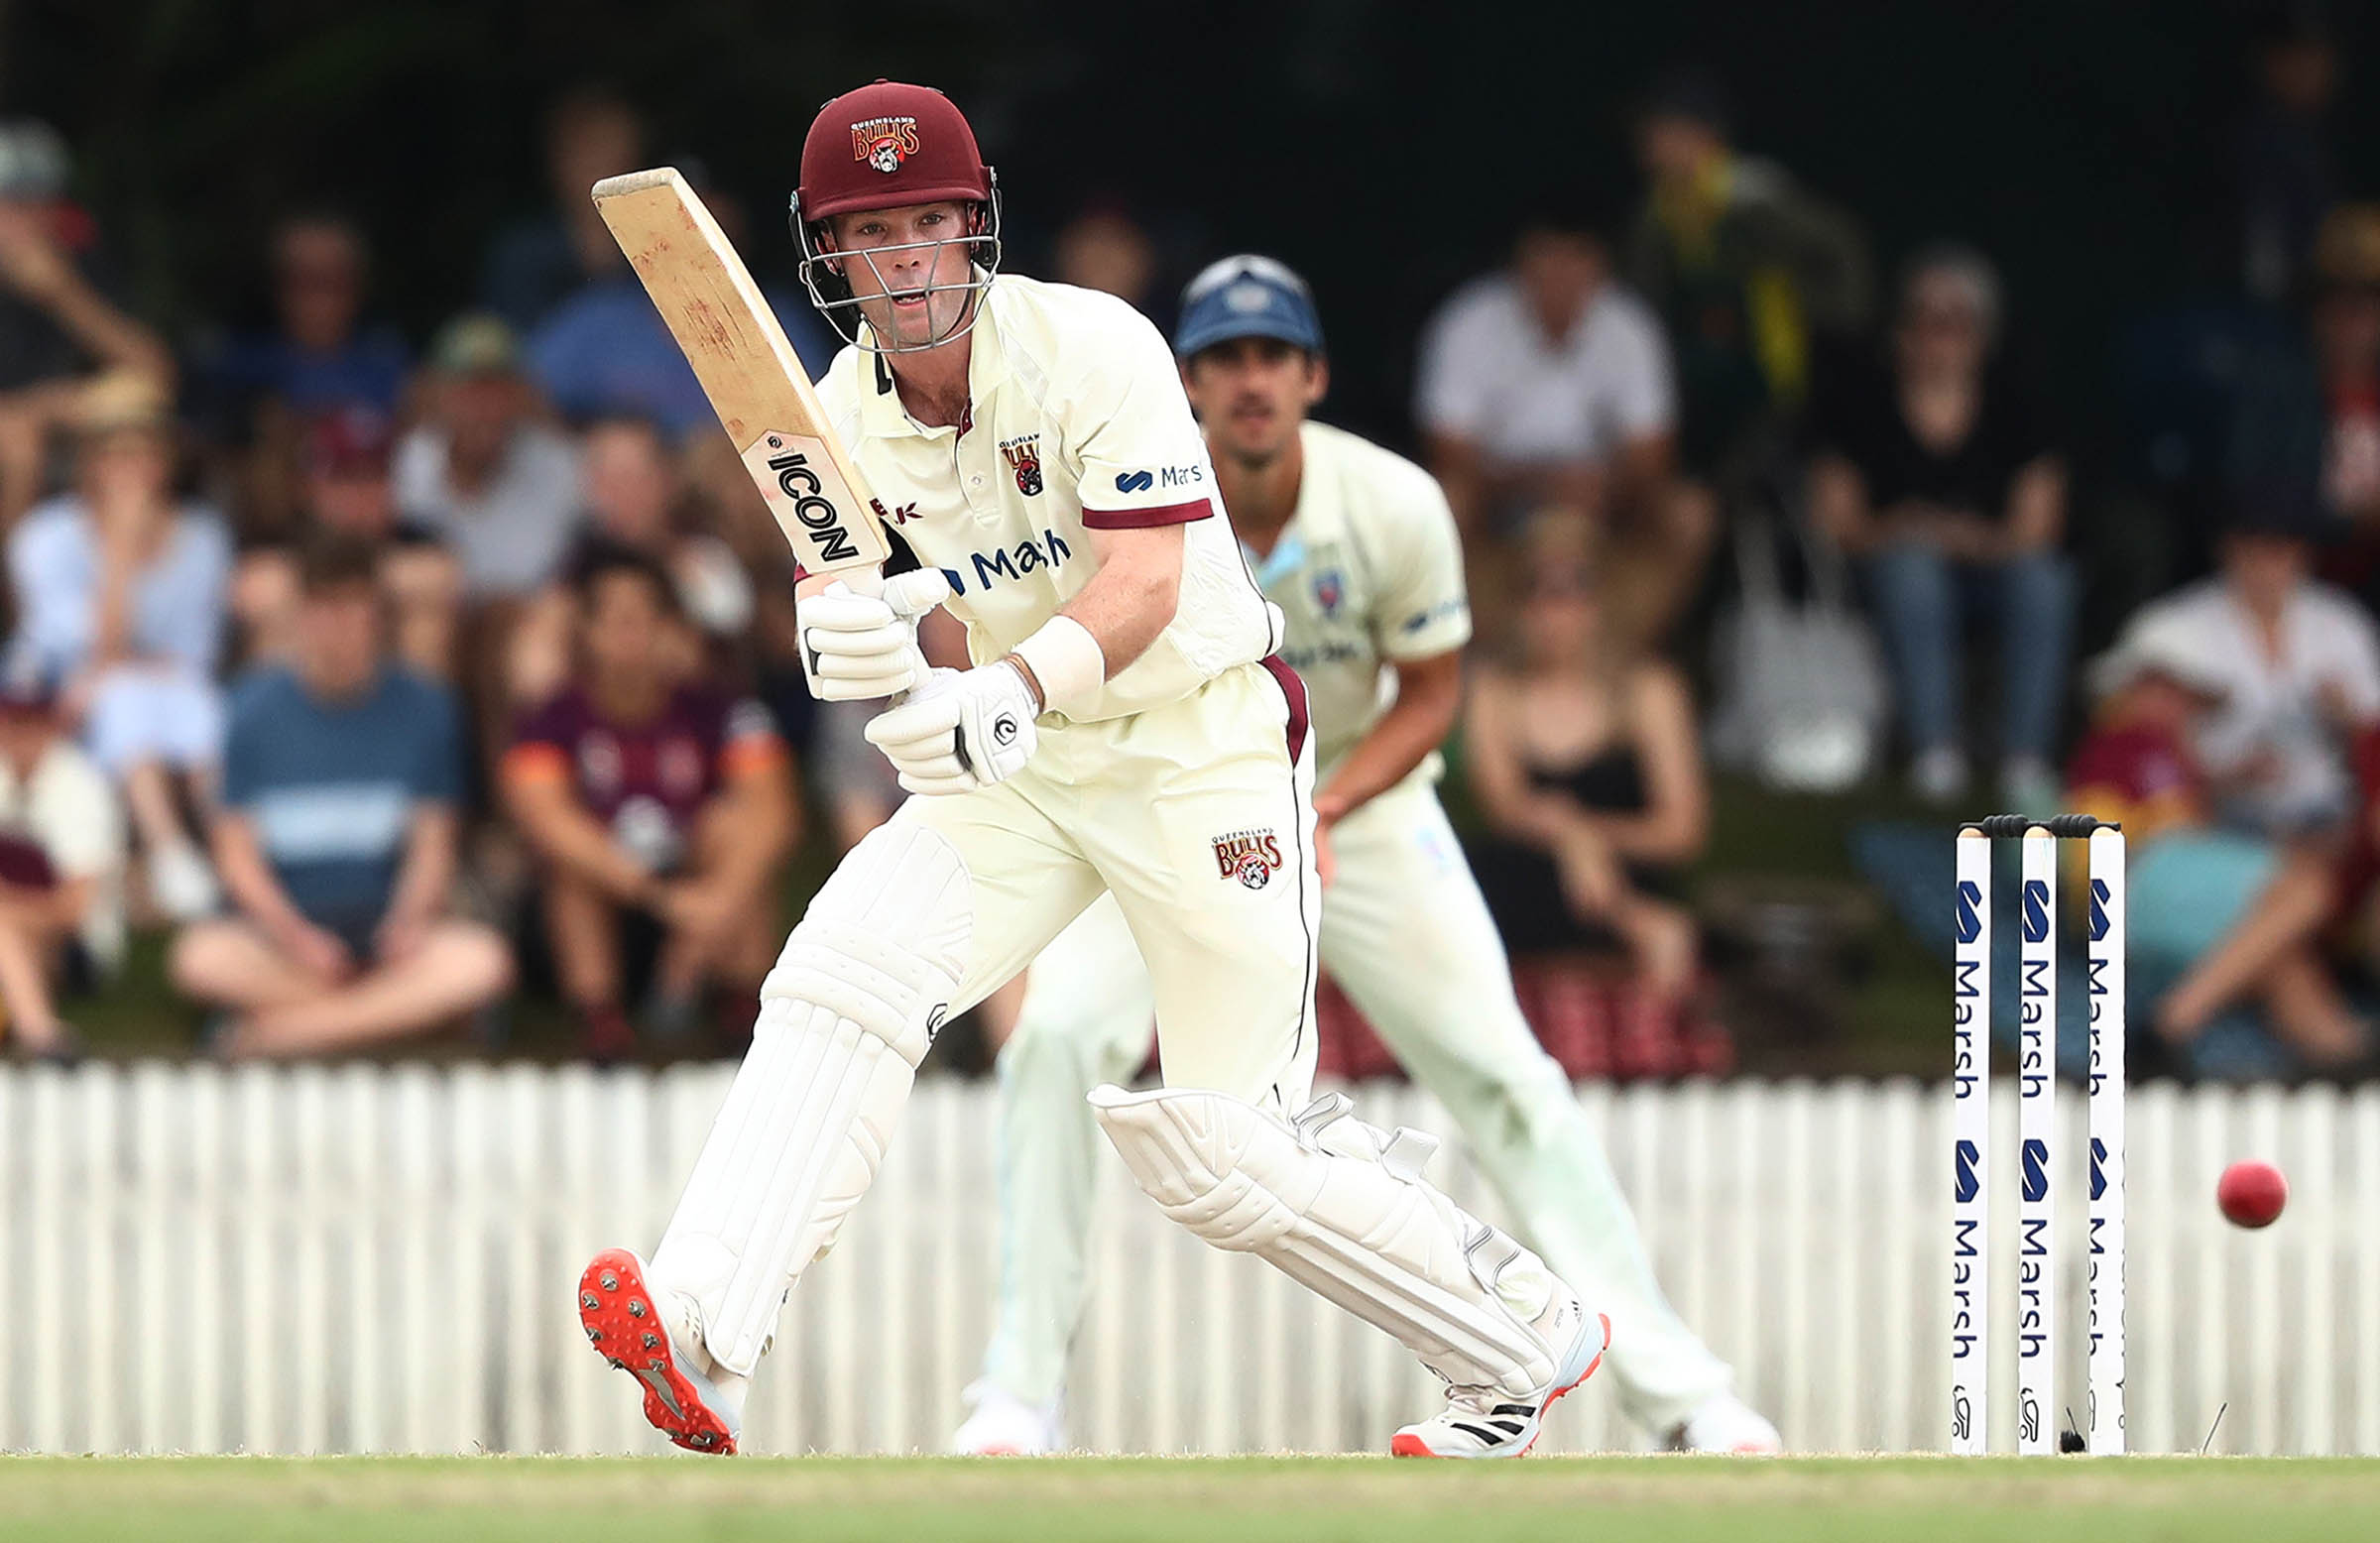 Peirson made a fighting 66 against a strong NSW attack in the Shield // Getty